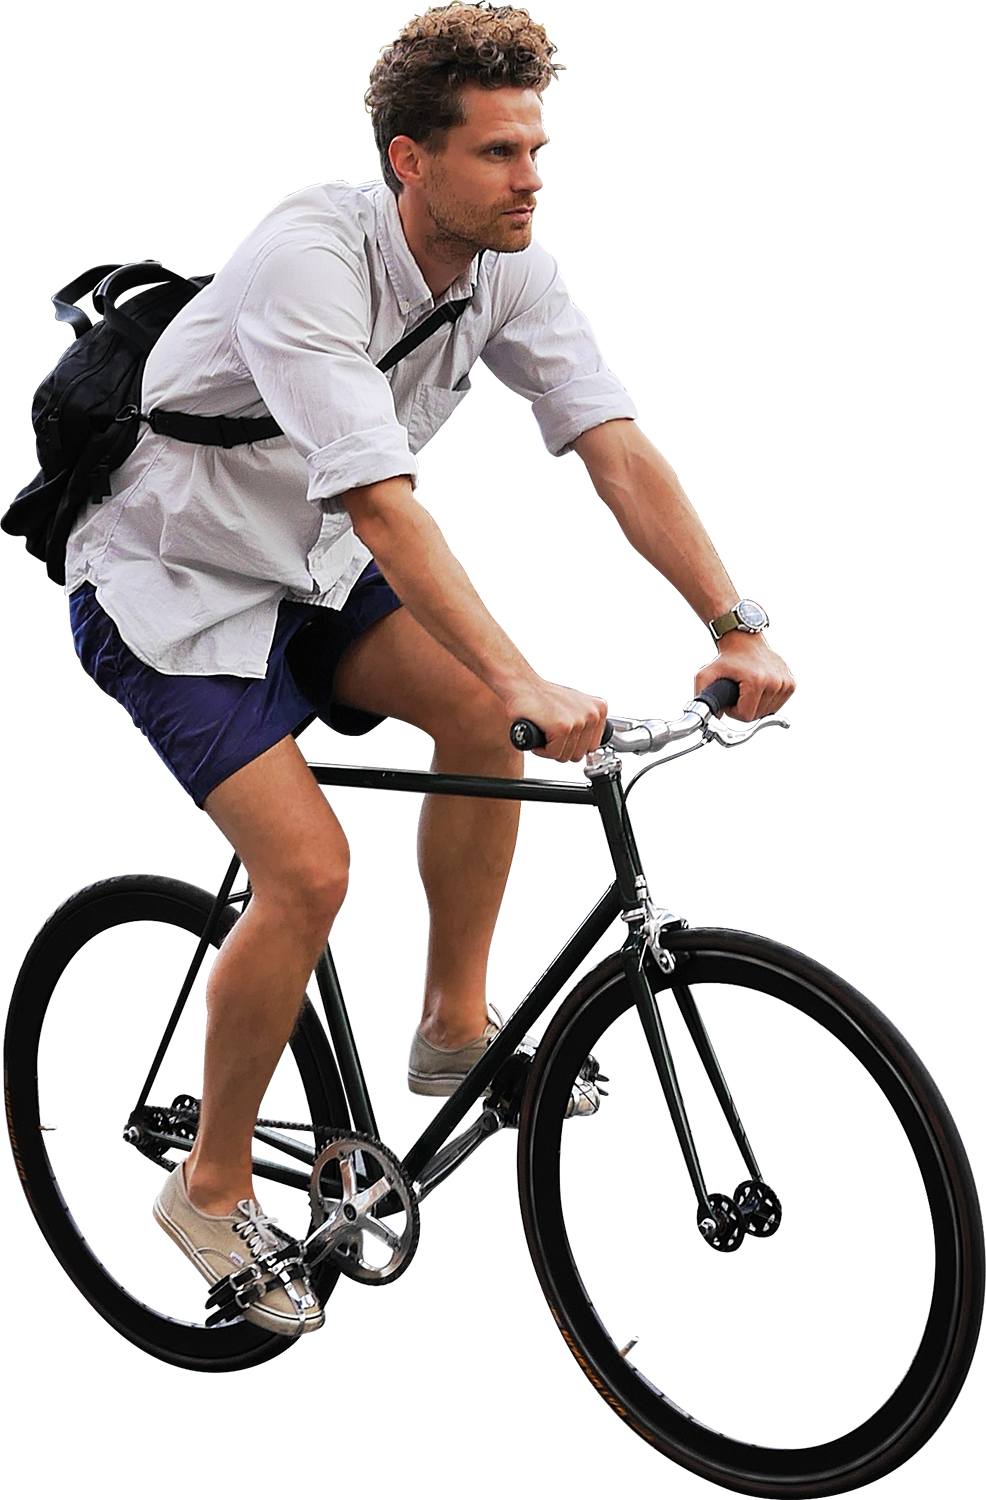 People bike png. Cutout collections skalgubbar photoshop